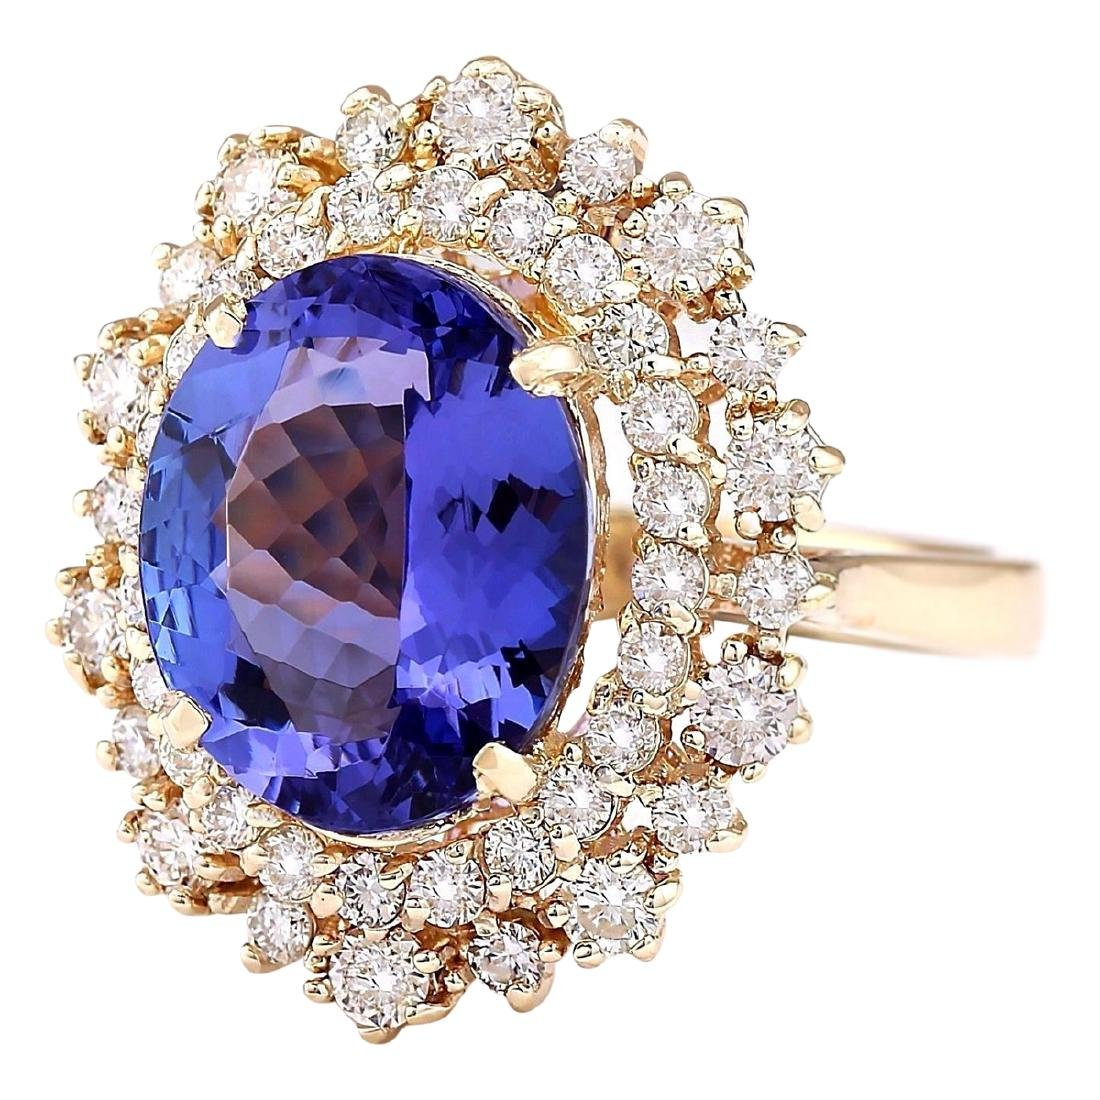 6.95 CTW Natural Tanzanite And Diamond Ring In 18K - 2